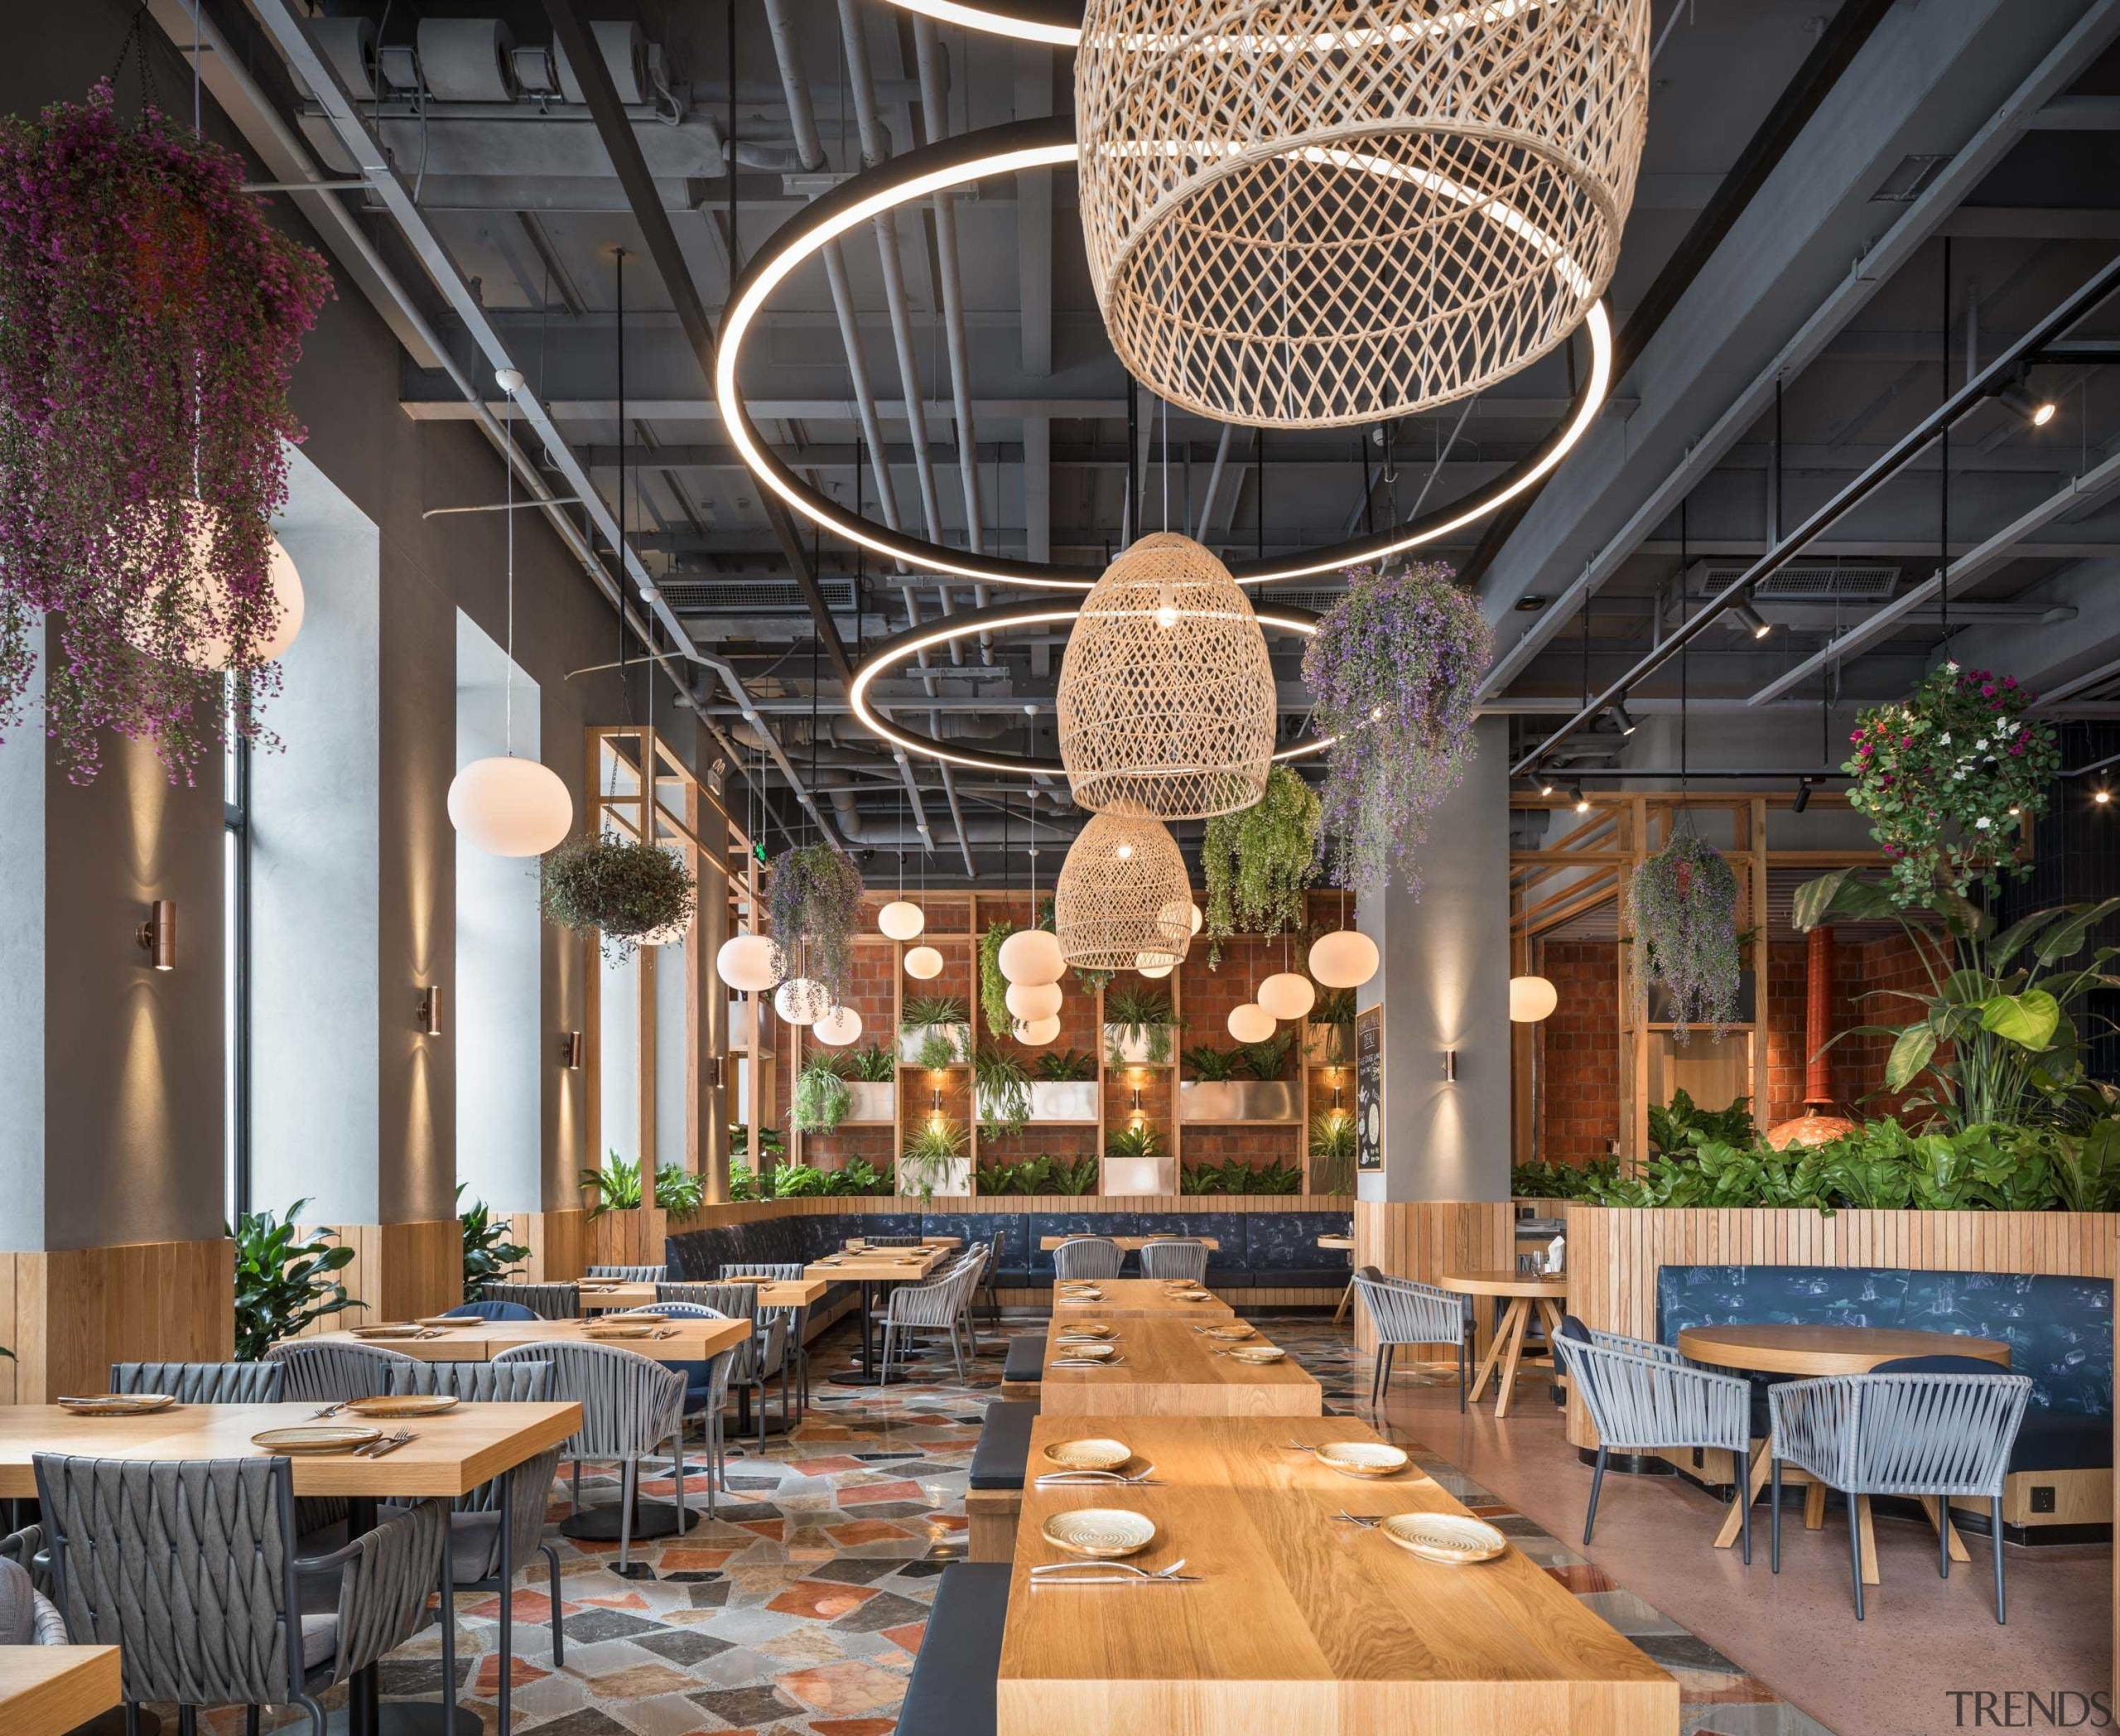 The sun-drenched indoor pizza garden is just one architecture, brunch, building, ceiling, chandelier, design, furniture, interior design, lighting, lobby, restaurant, table, black